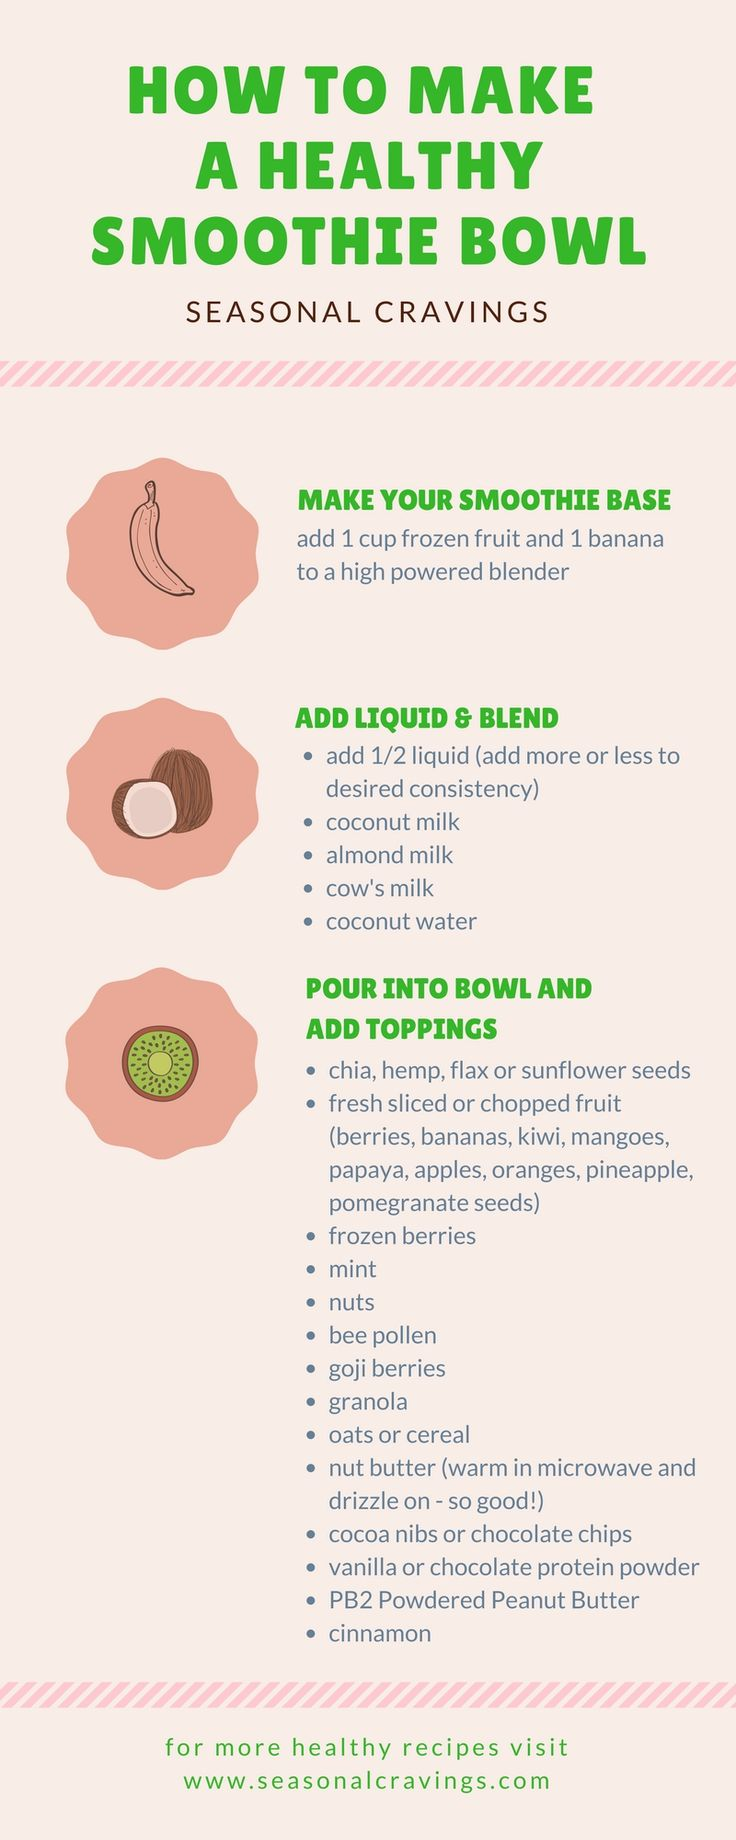 How to Make a Healthy Smoothie Bowl infographic